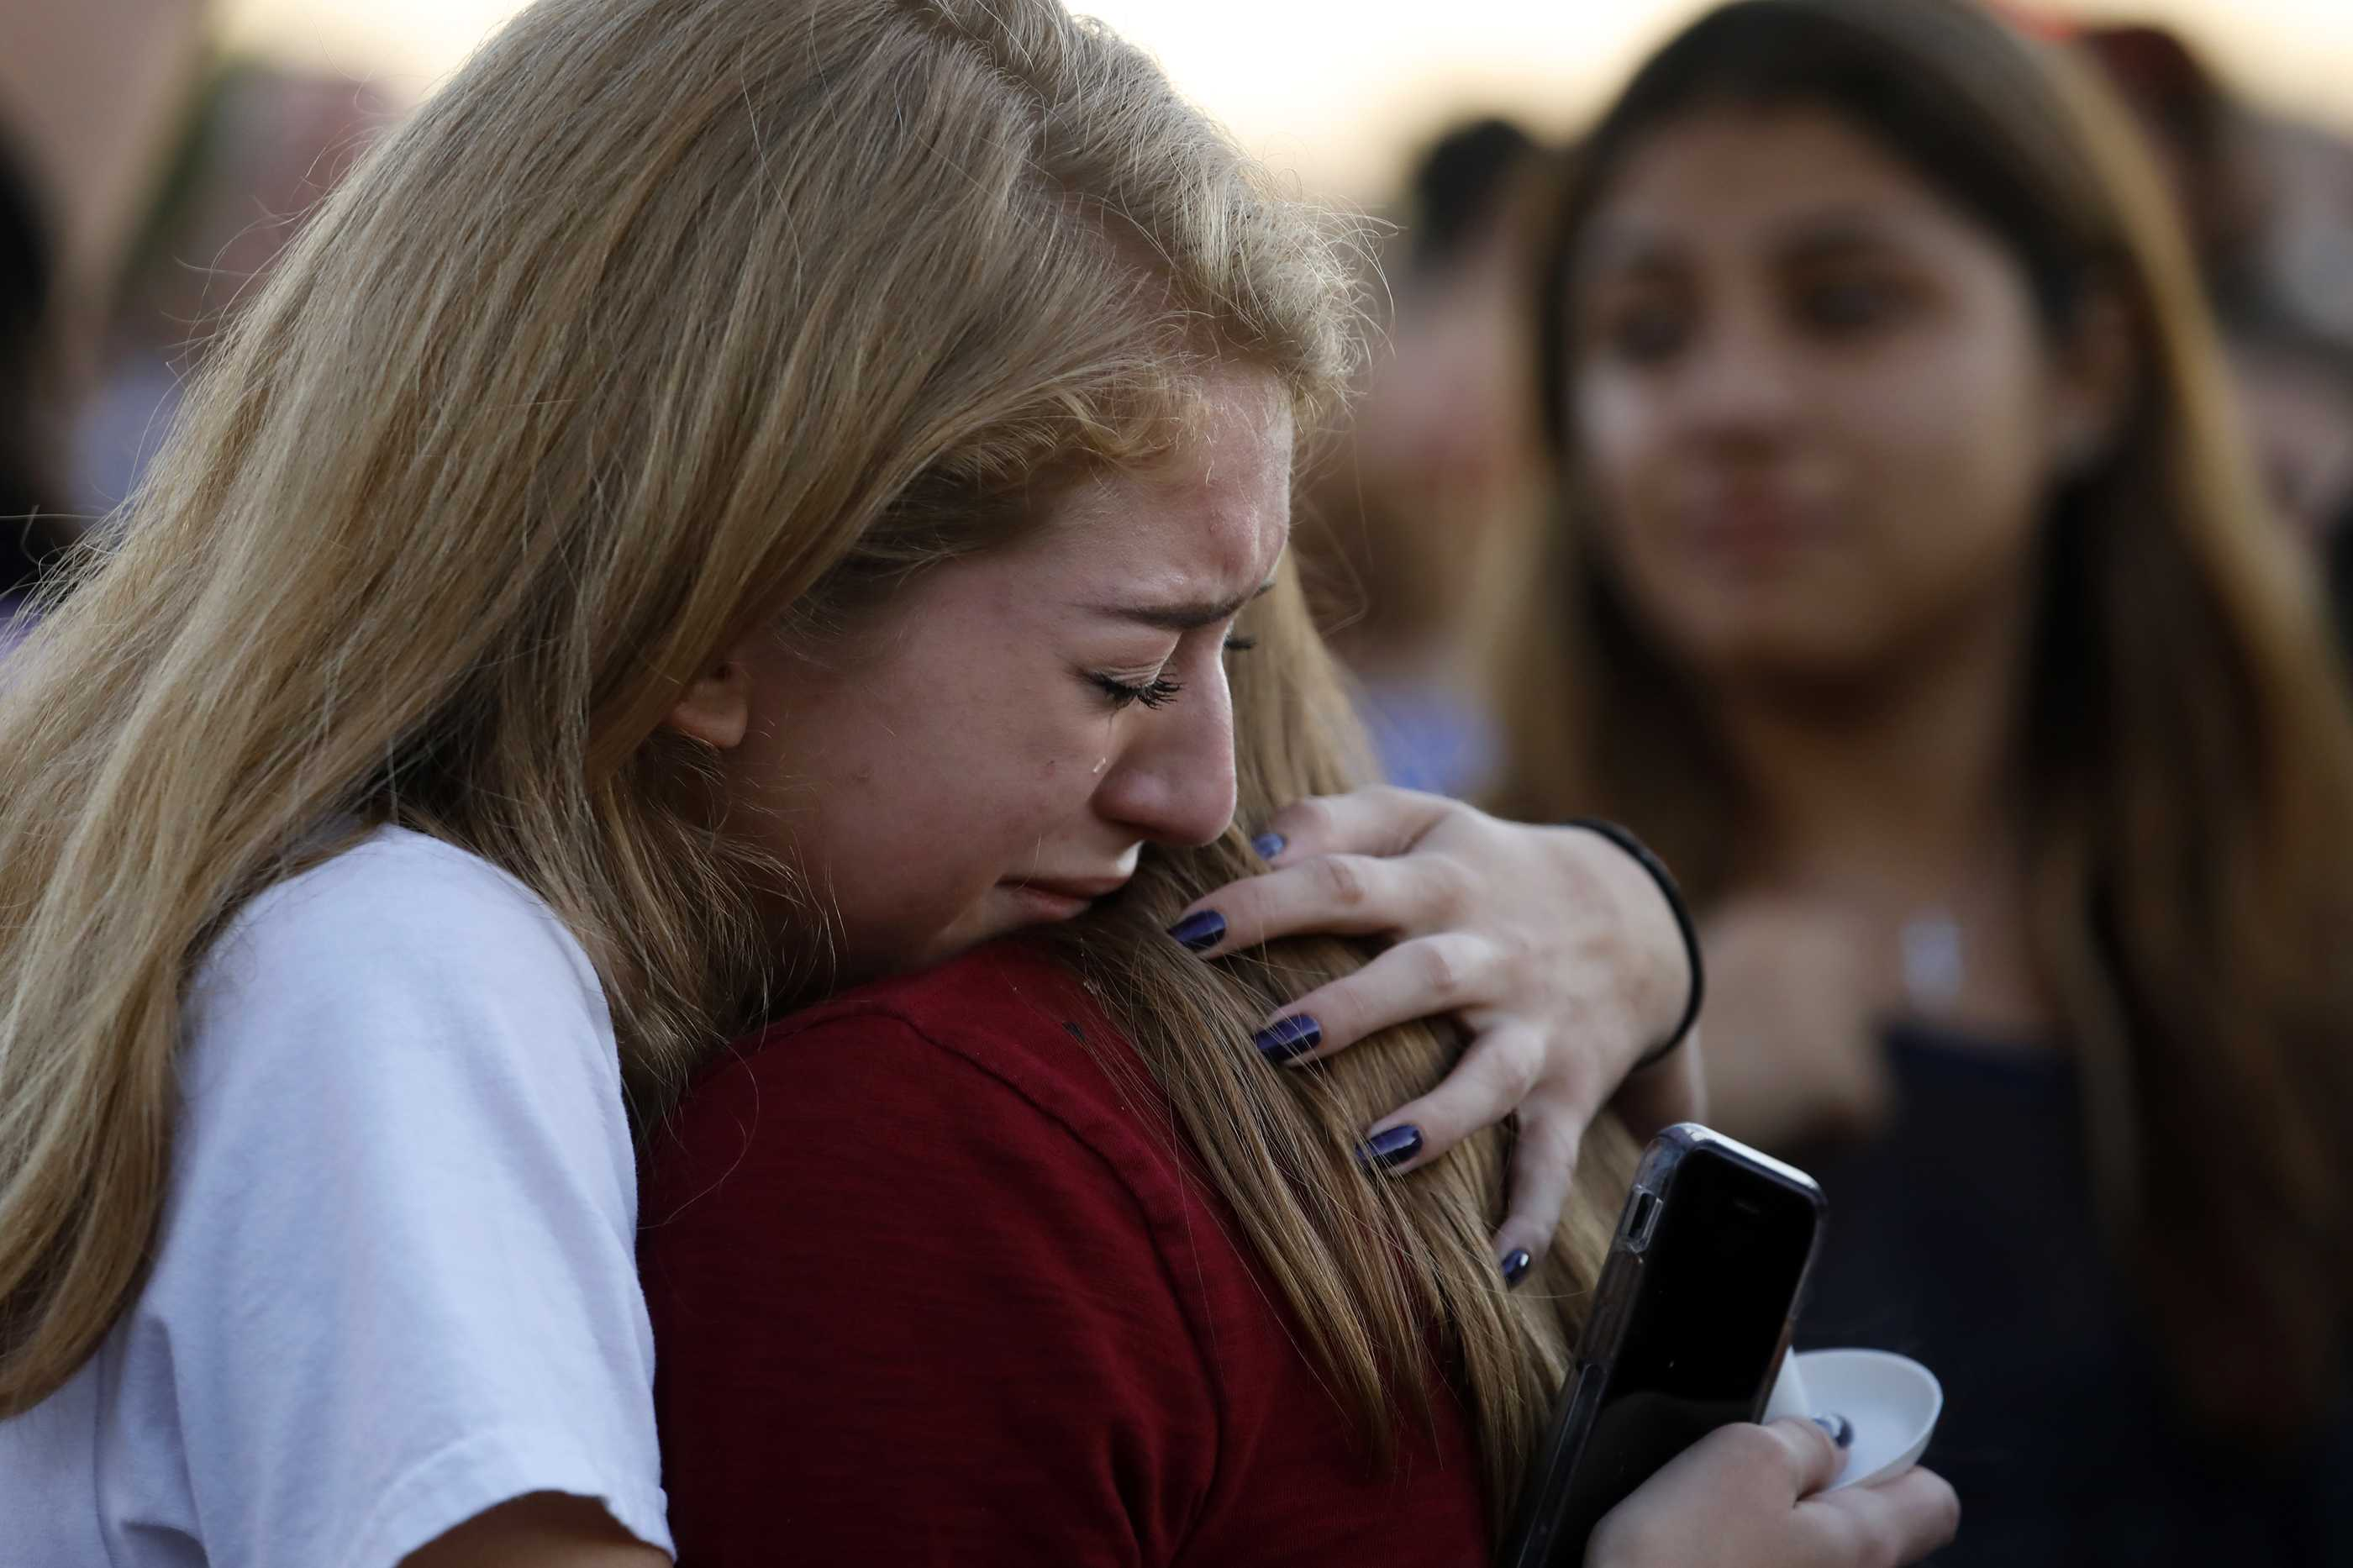 Parkland shooting survivors speak out, demand change on social media